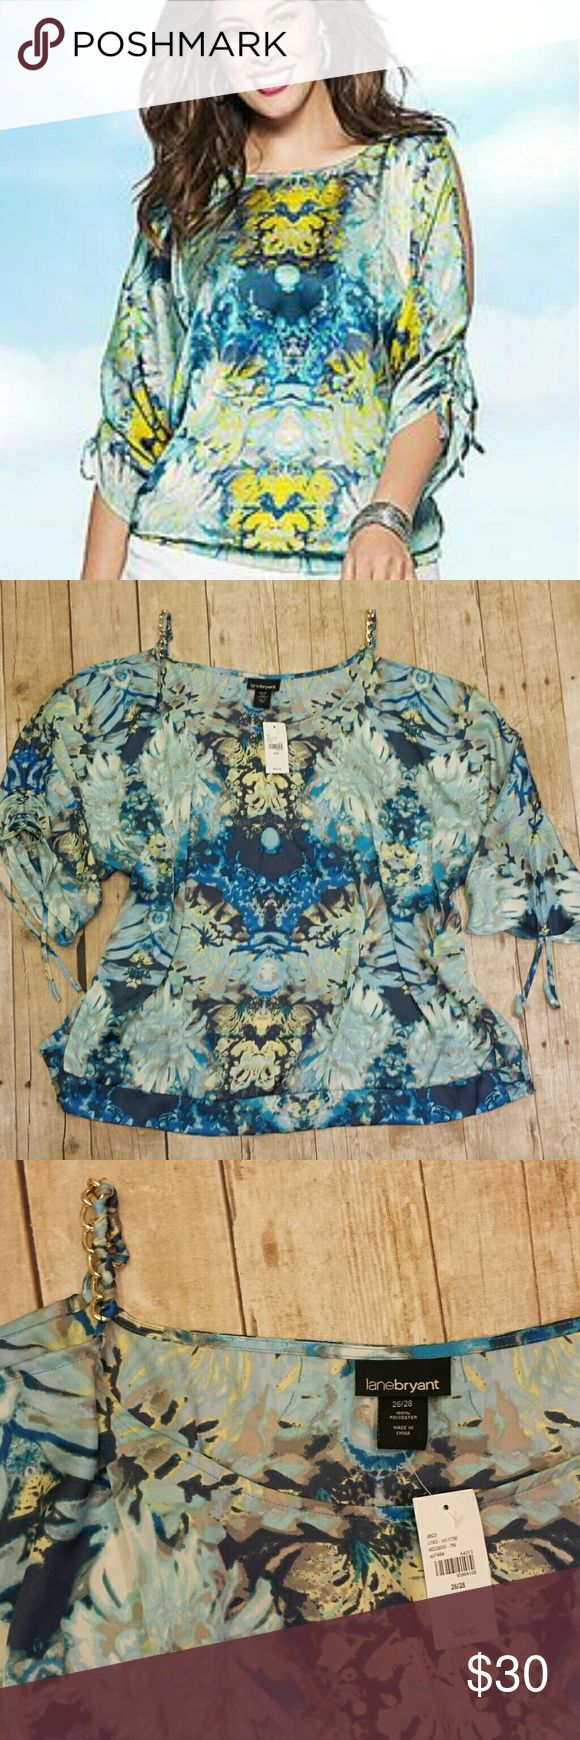 """Lane Bryant NWT Chain Cold Shoulder Top NEW WITH TAGS Lane Bryant cold shoulder Top with gold chain strap detailing. Sleeves have optional strings to bunch up or wear long.  Beautiful floral print with a watercolor vibe. Elastic band on the rear provides great coverage. 100% polyester. Size 26/28.  Retail $49.95.  Measurements  Pit to Pit 31"""" Top of chain shoulder to bottom hem 29"""" Lane Bryant Tops Blouses"""